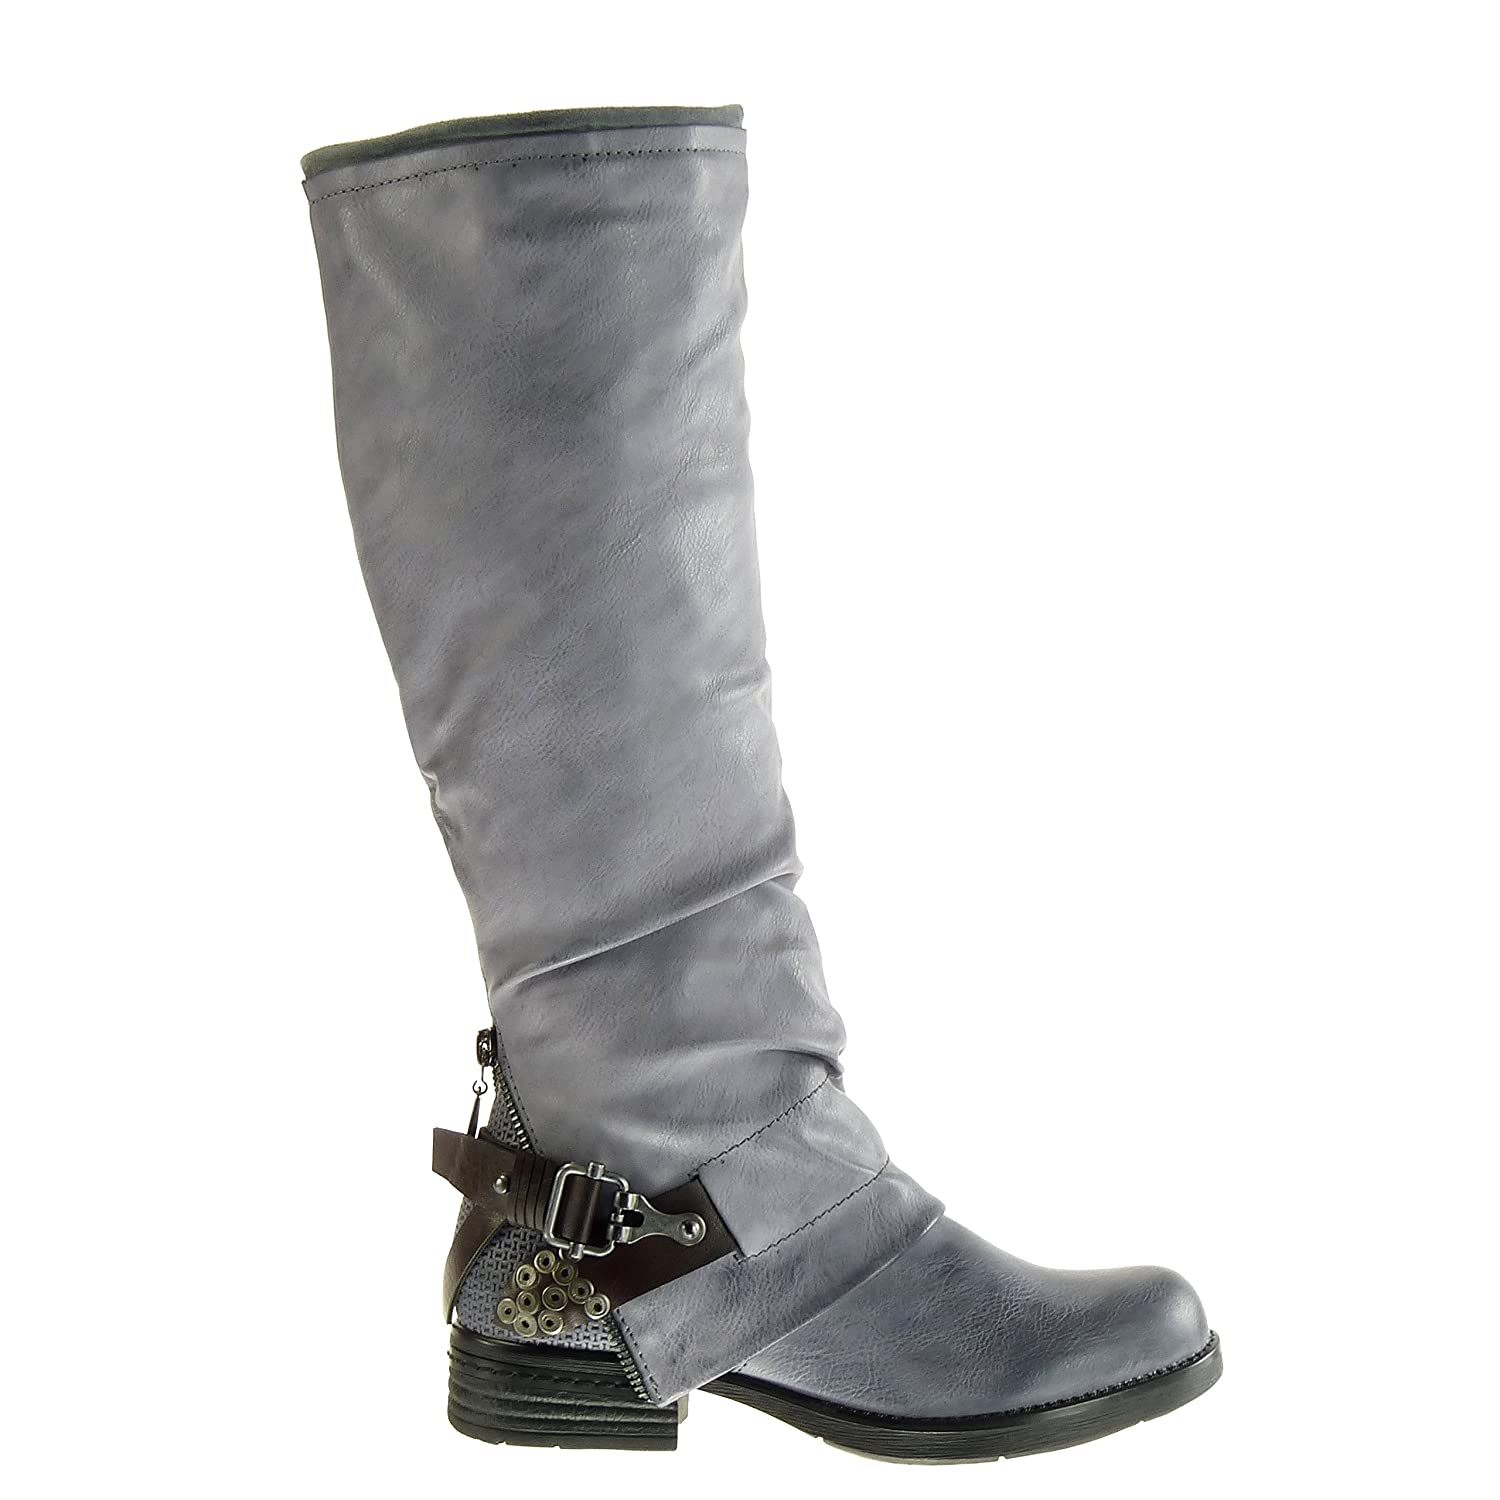 Angkorly - Women's Fashion Shoes Boots - biker - cavalier - braided -  studded - buckle Block Heel 3 CM: Amazon.co.uk: Shoes & Bags